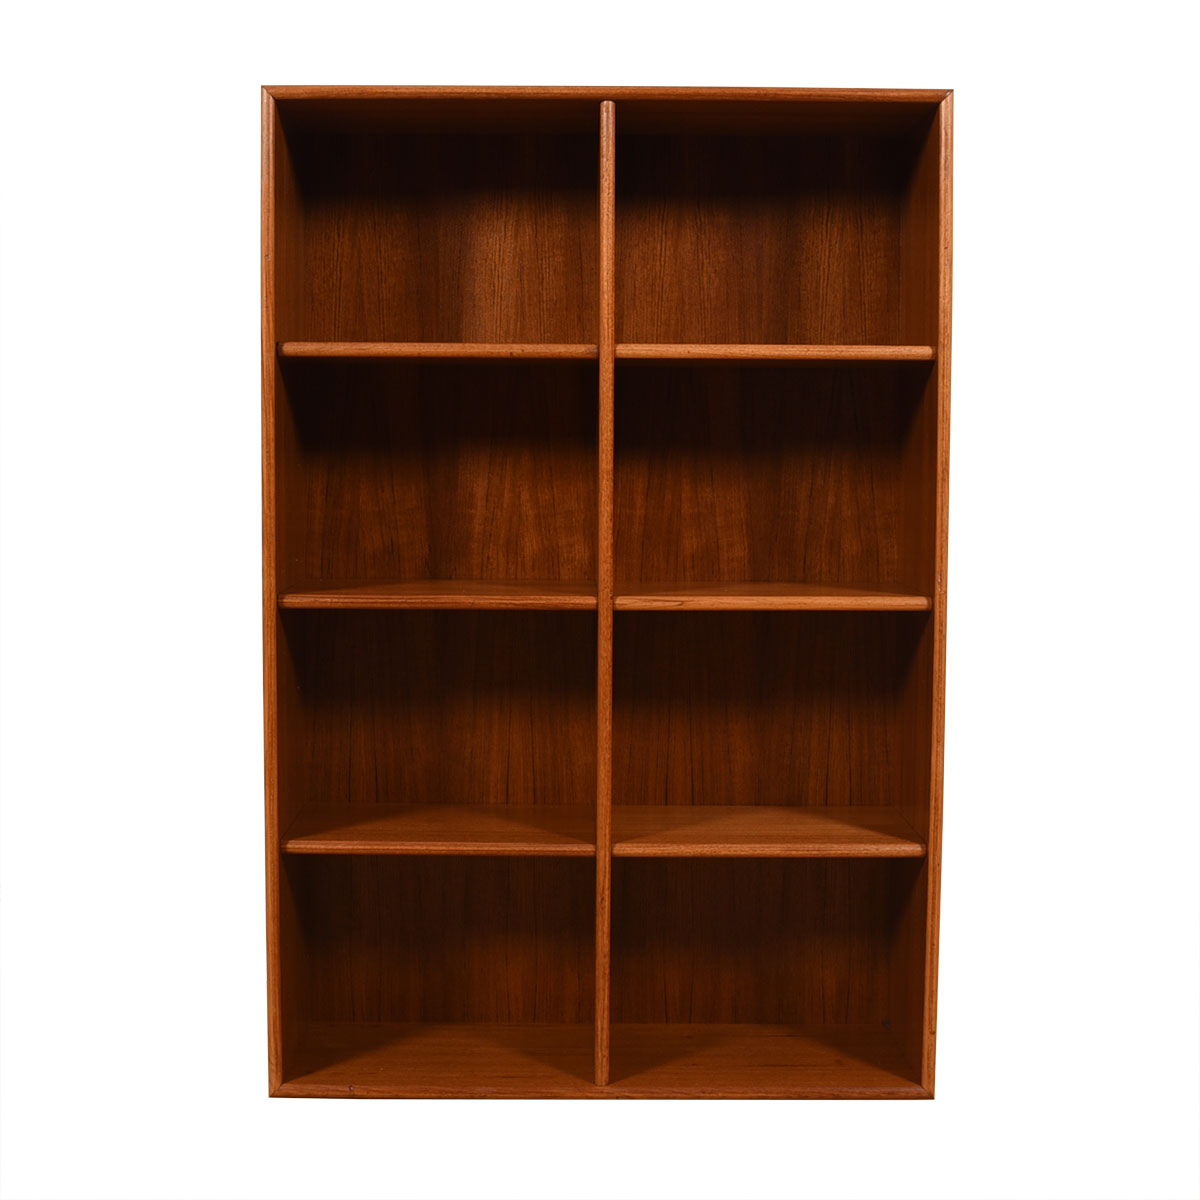 Thin Compact Danish Modern Teak Bookcase / Room Divider